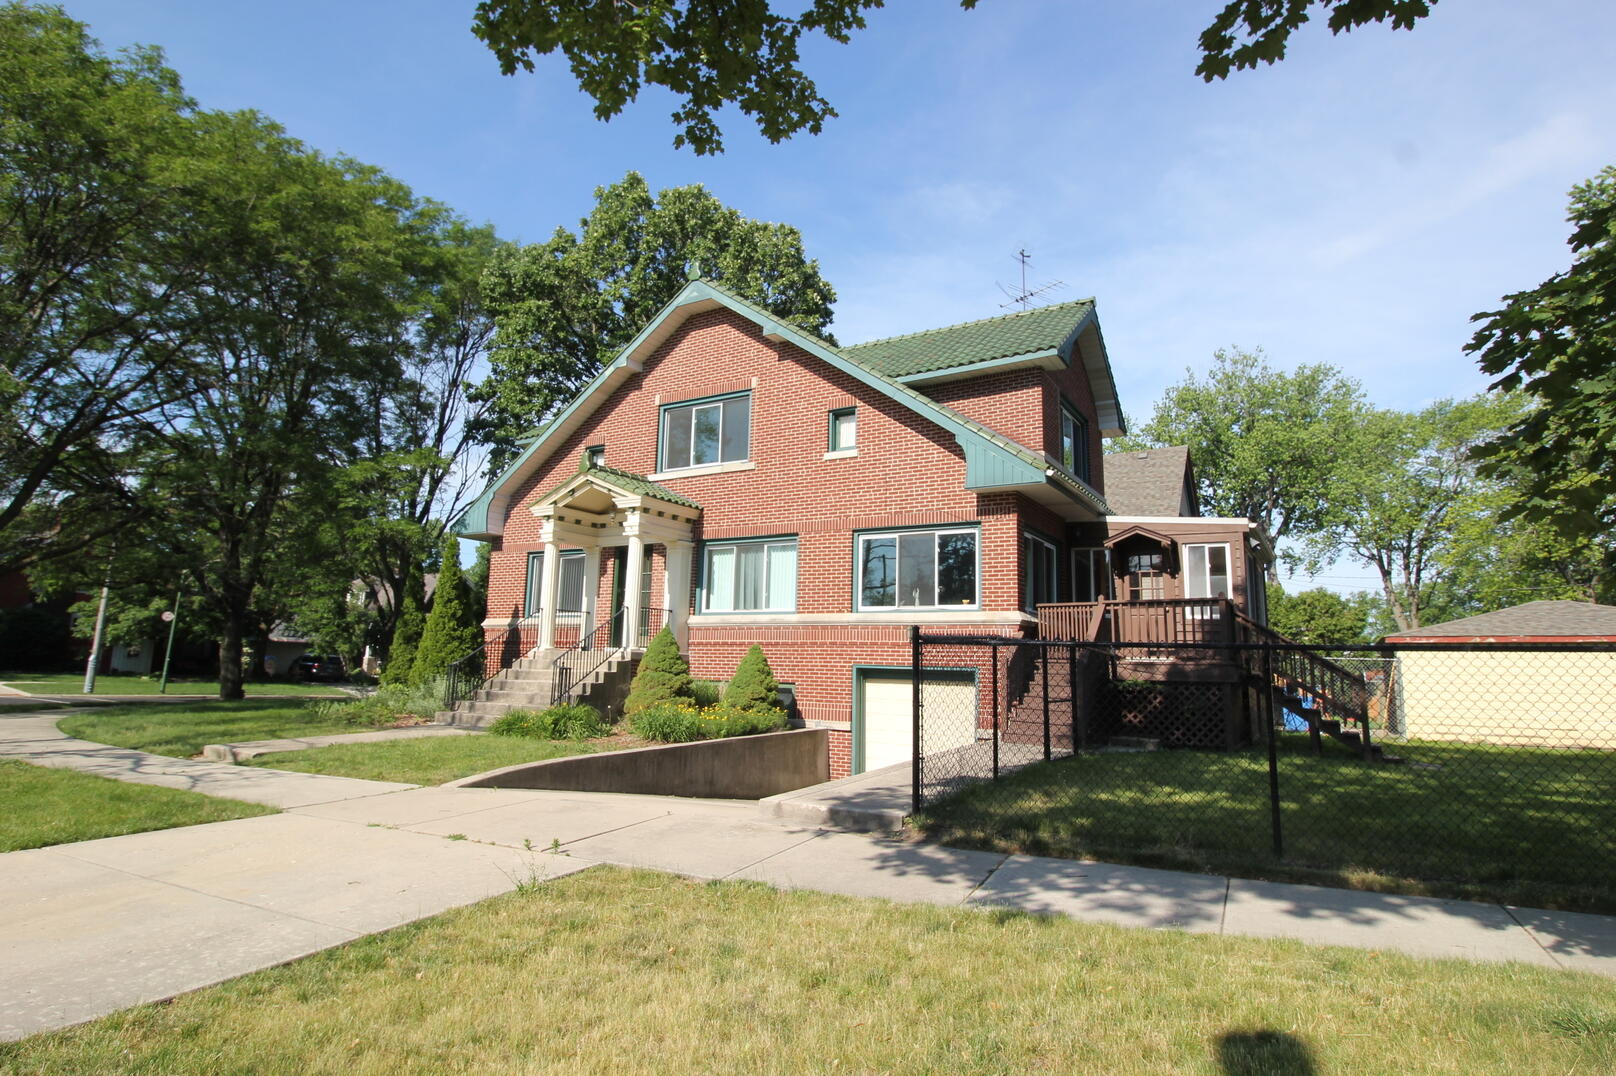 Photo of 10874 Bell Chicago IL 60643